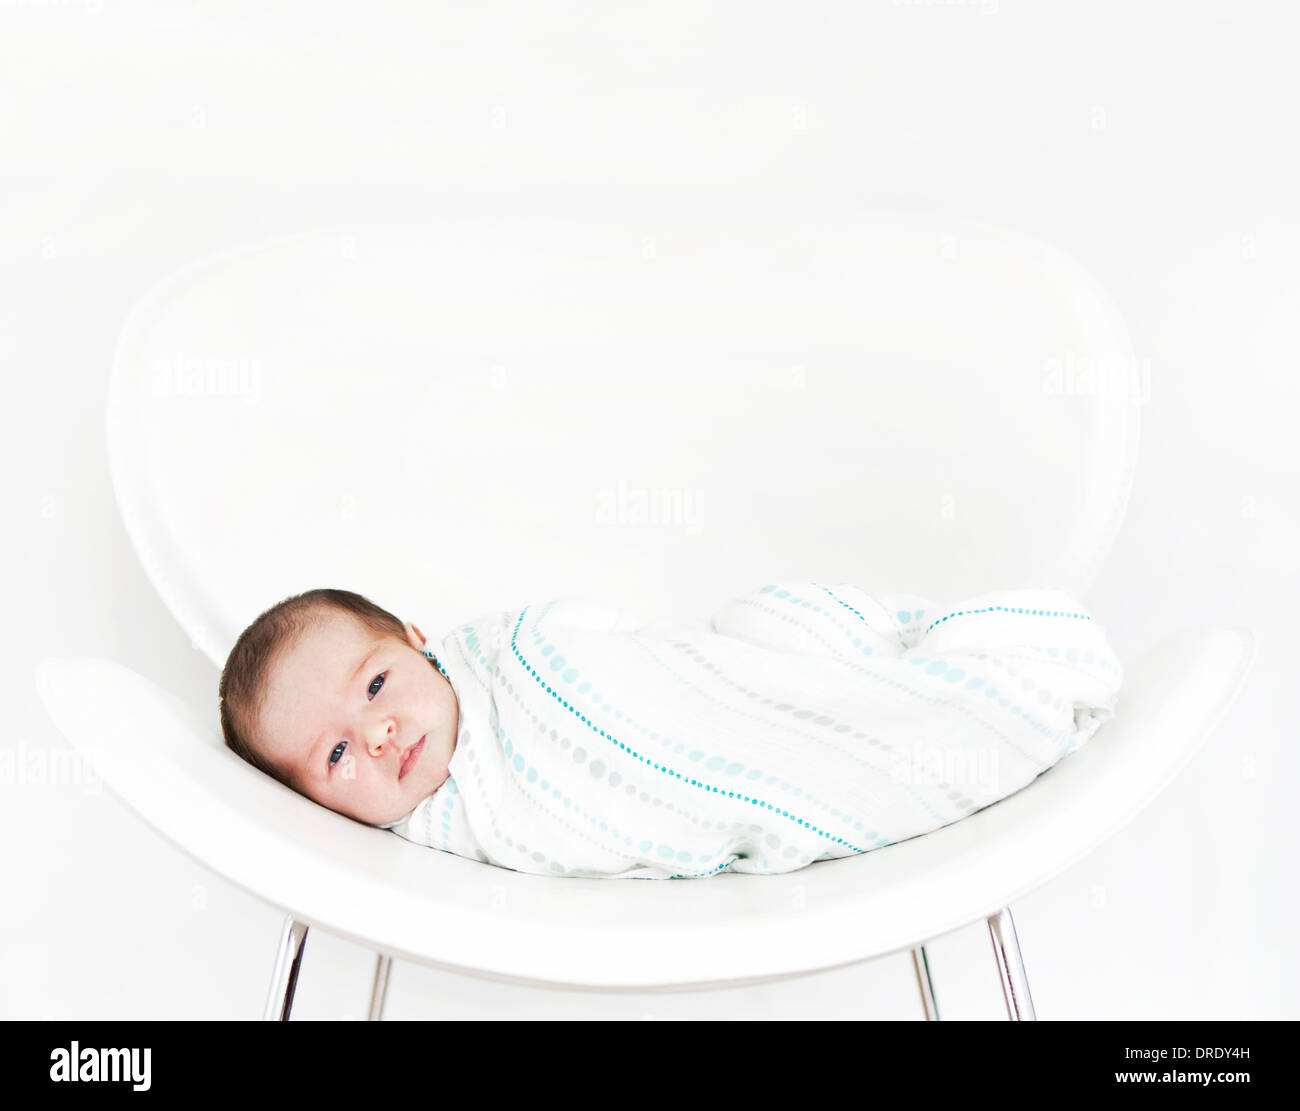 Swaddled baby on white chair - Stock Image